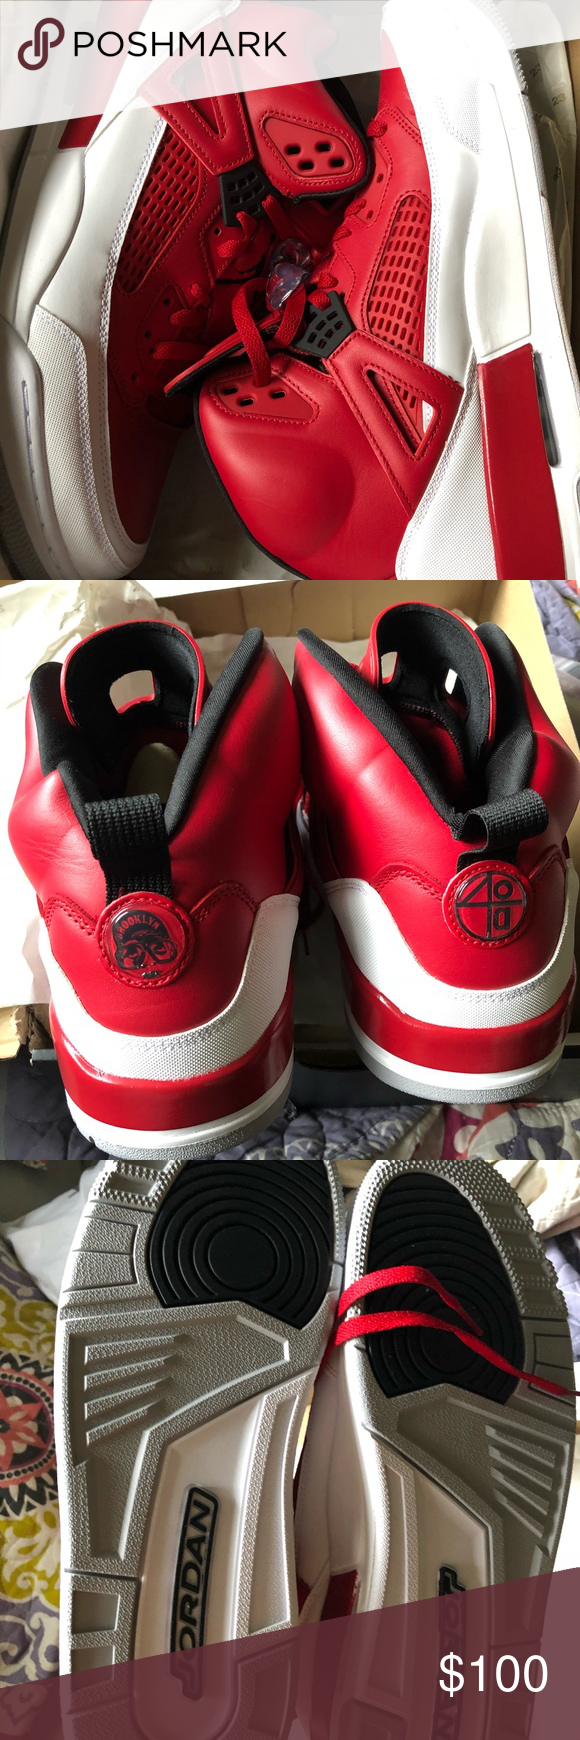 06b38a91869a5c Air jordan Spizike Brand new pair of Air jordan spizike size 14 brand new  with box. Jordan Shoes Athletic Shoes